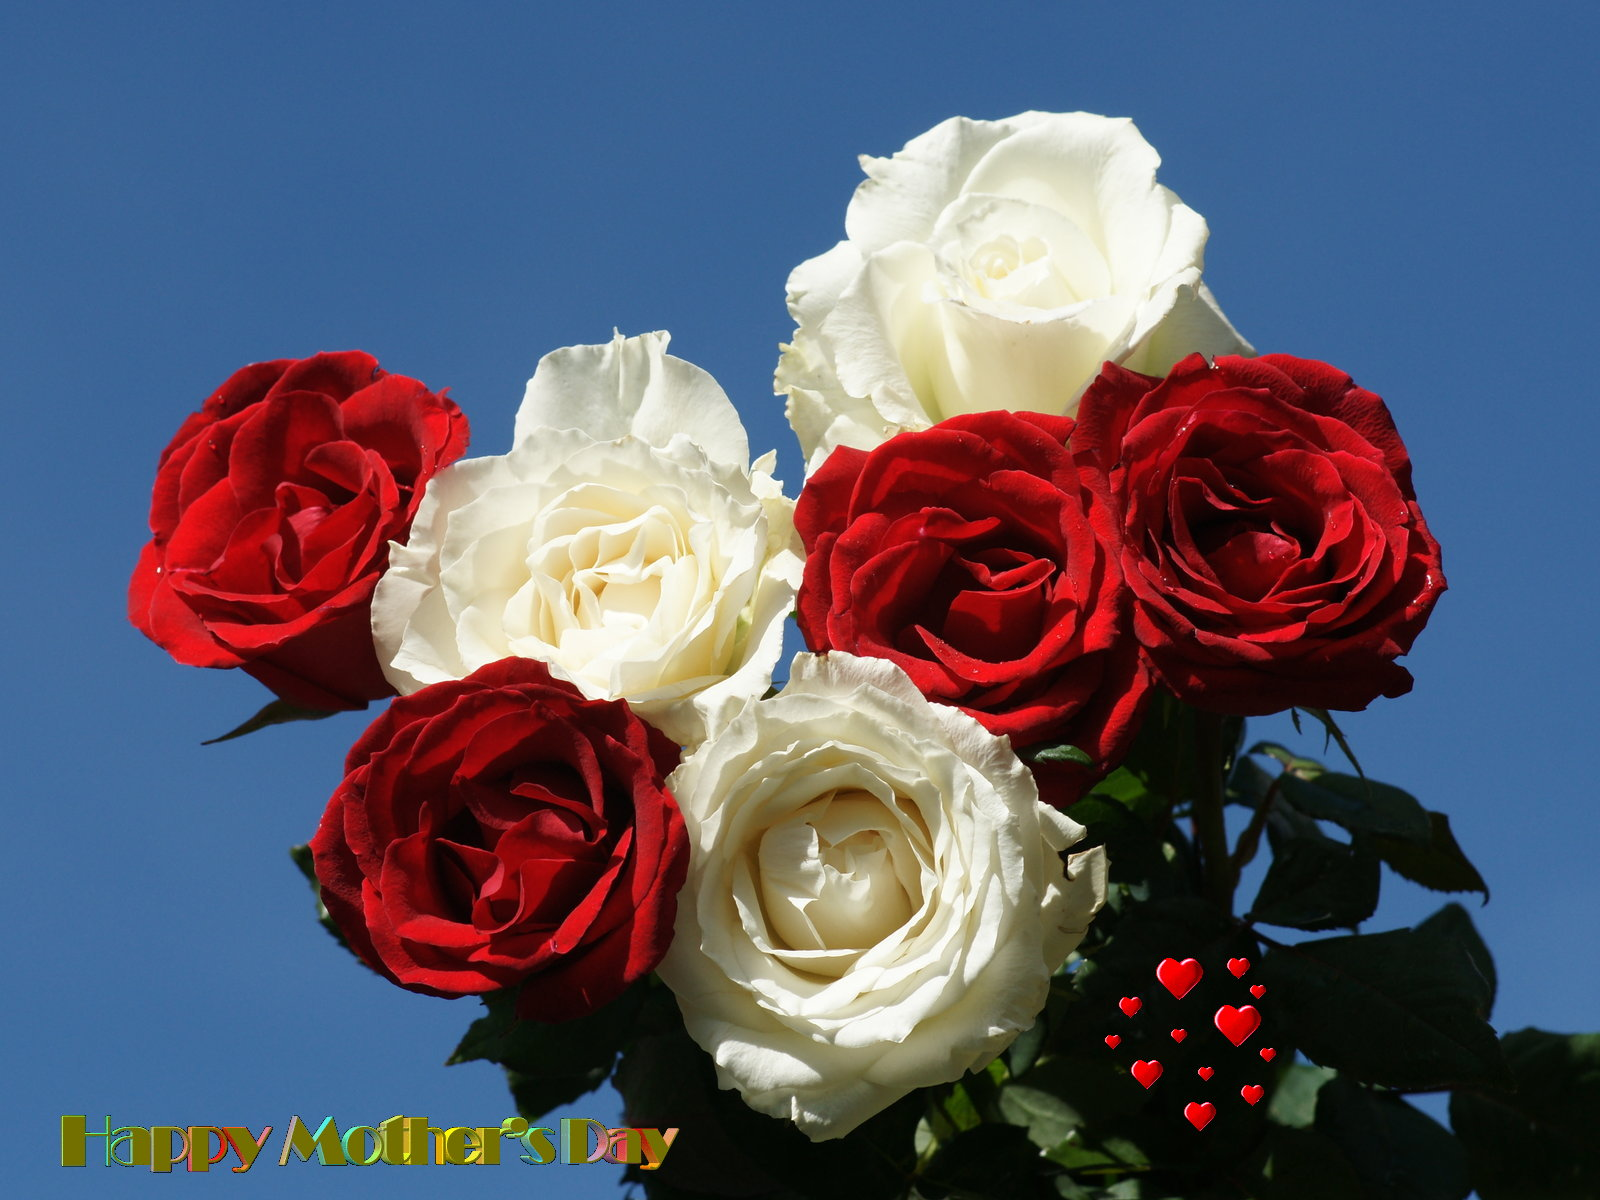 Mothers day wallpaper beautiful flowers beautiful red and white roses izmirmasajfo